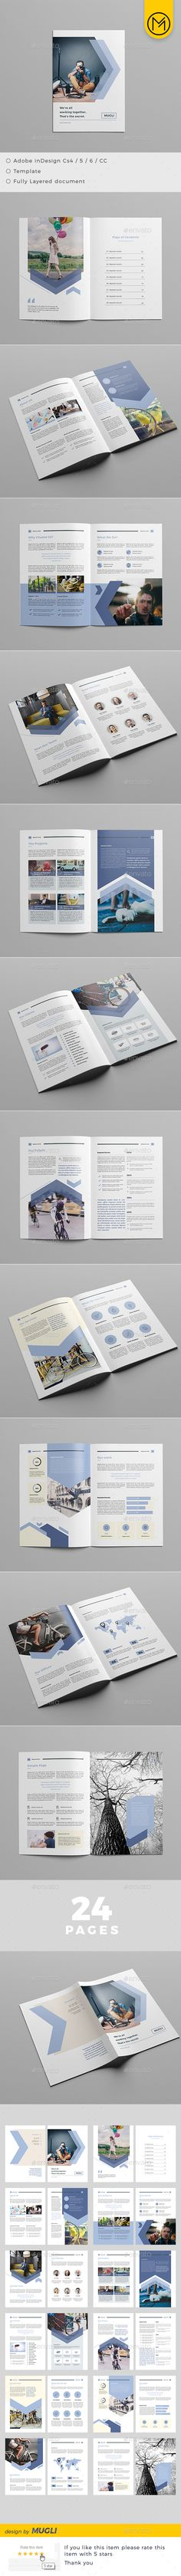 The Brochure Template InDesign INDD - 24 Pages